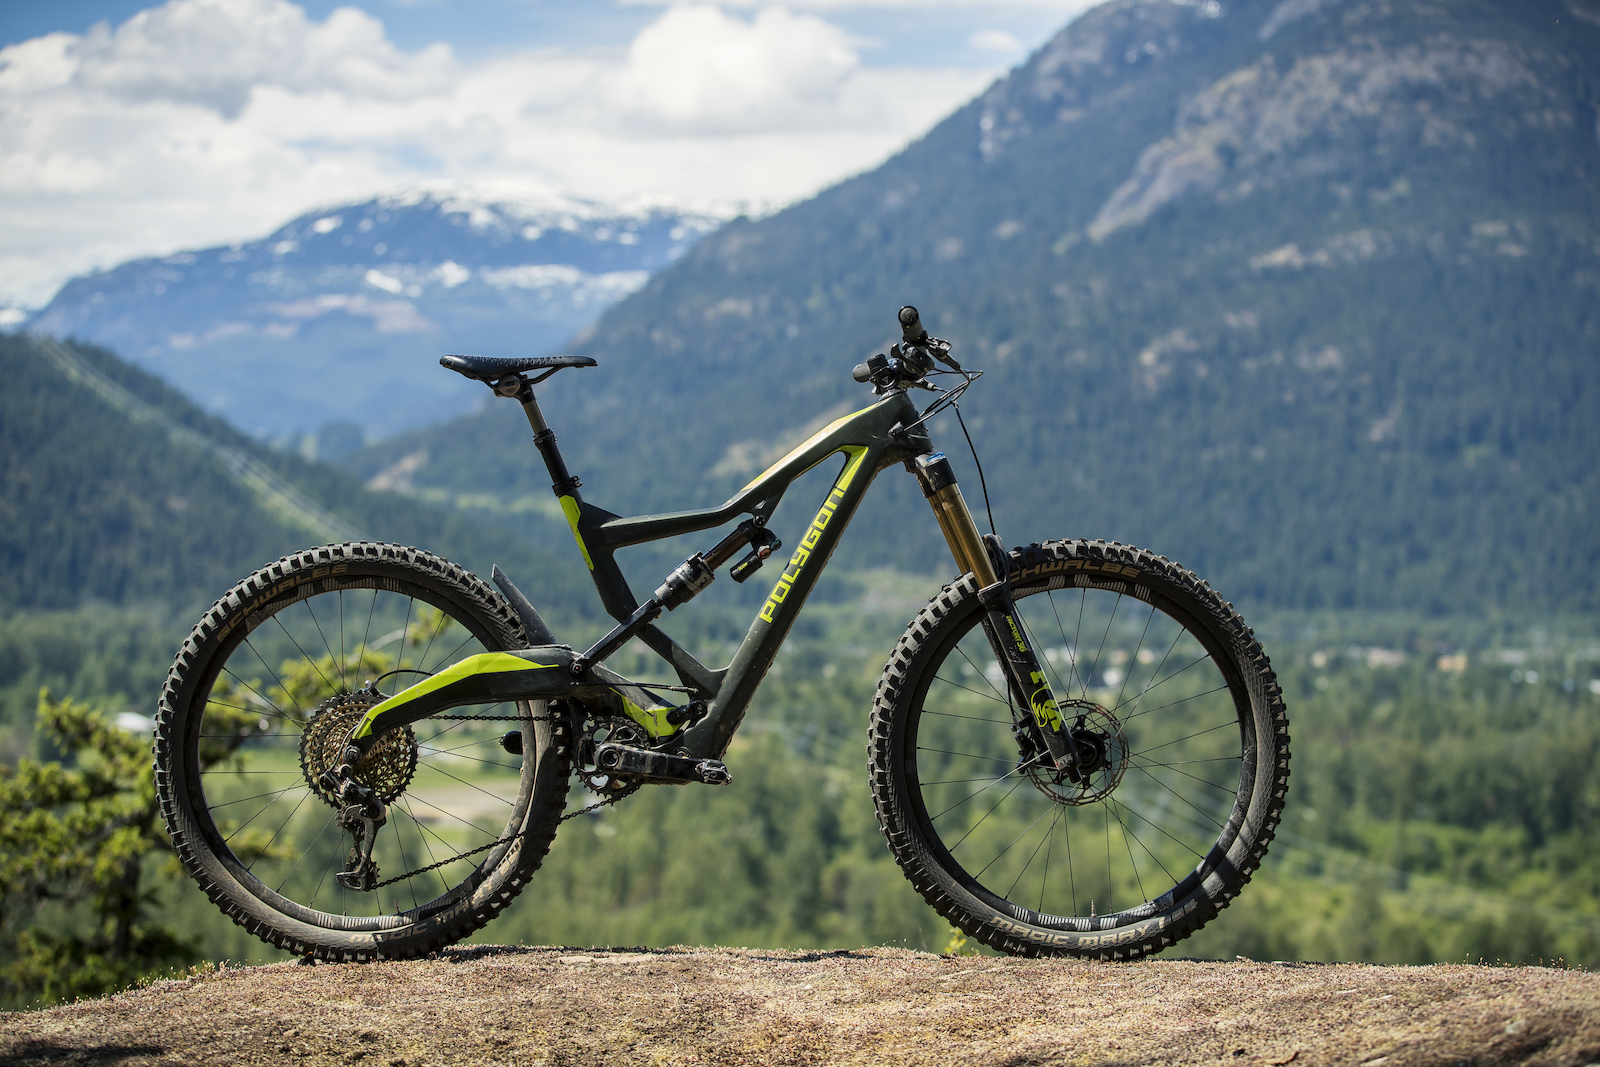 f701e2462f8 Is Polygon's Square One EX9 the Elusive 'One Bike'? - Review - Pinkbike